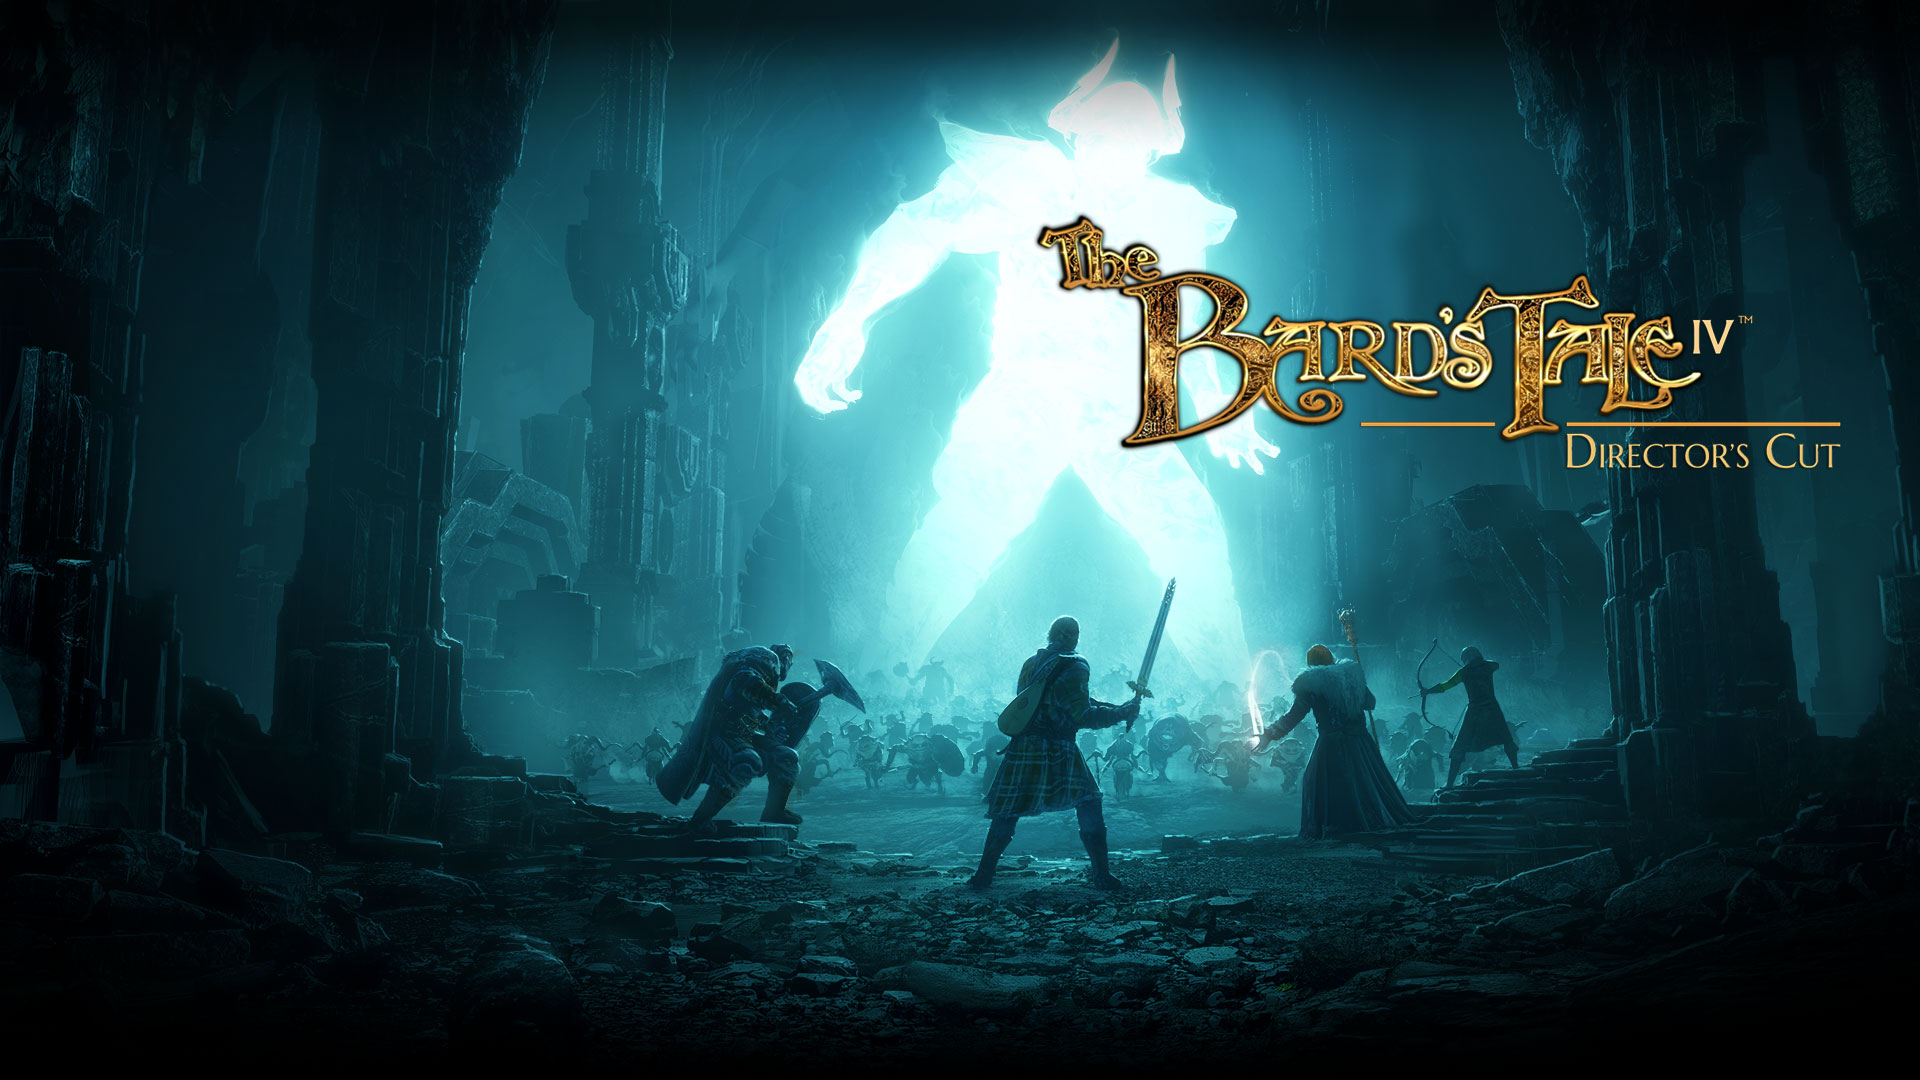 The Bard's Tale IV: Director's Cut. Many people fighting a giant glowing creature in a large room with rock pillars